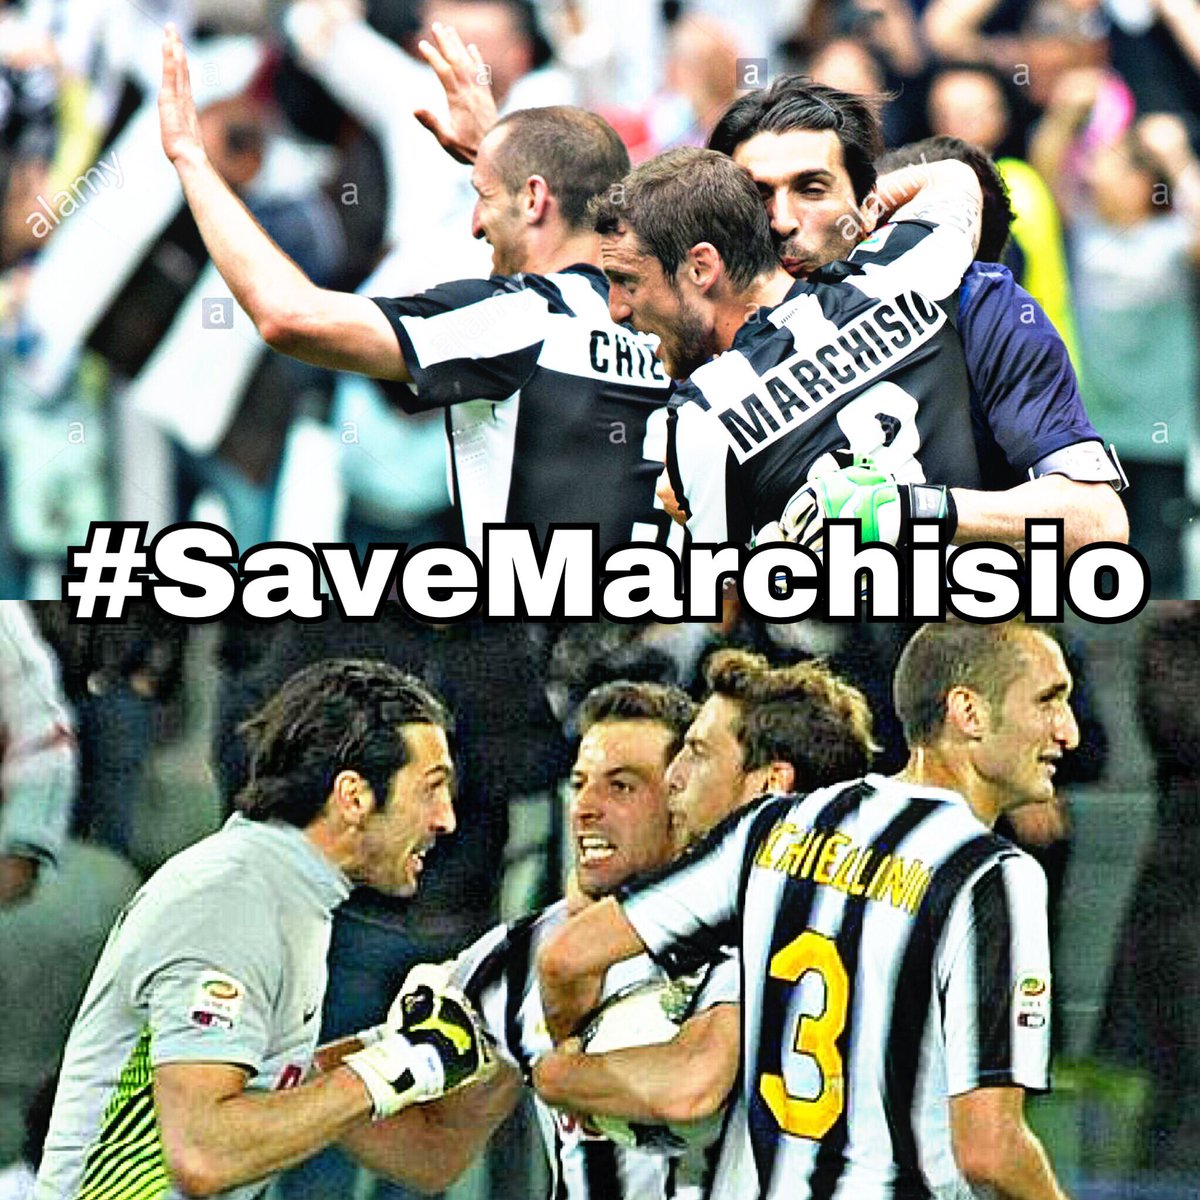 You, #Buffon and #Chellini are the rest of the spirit of #Juve,, please do not go  #savemarchisio<br>http://pic.twitter.com/vPWZb3B5ws